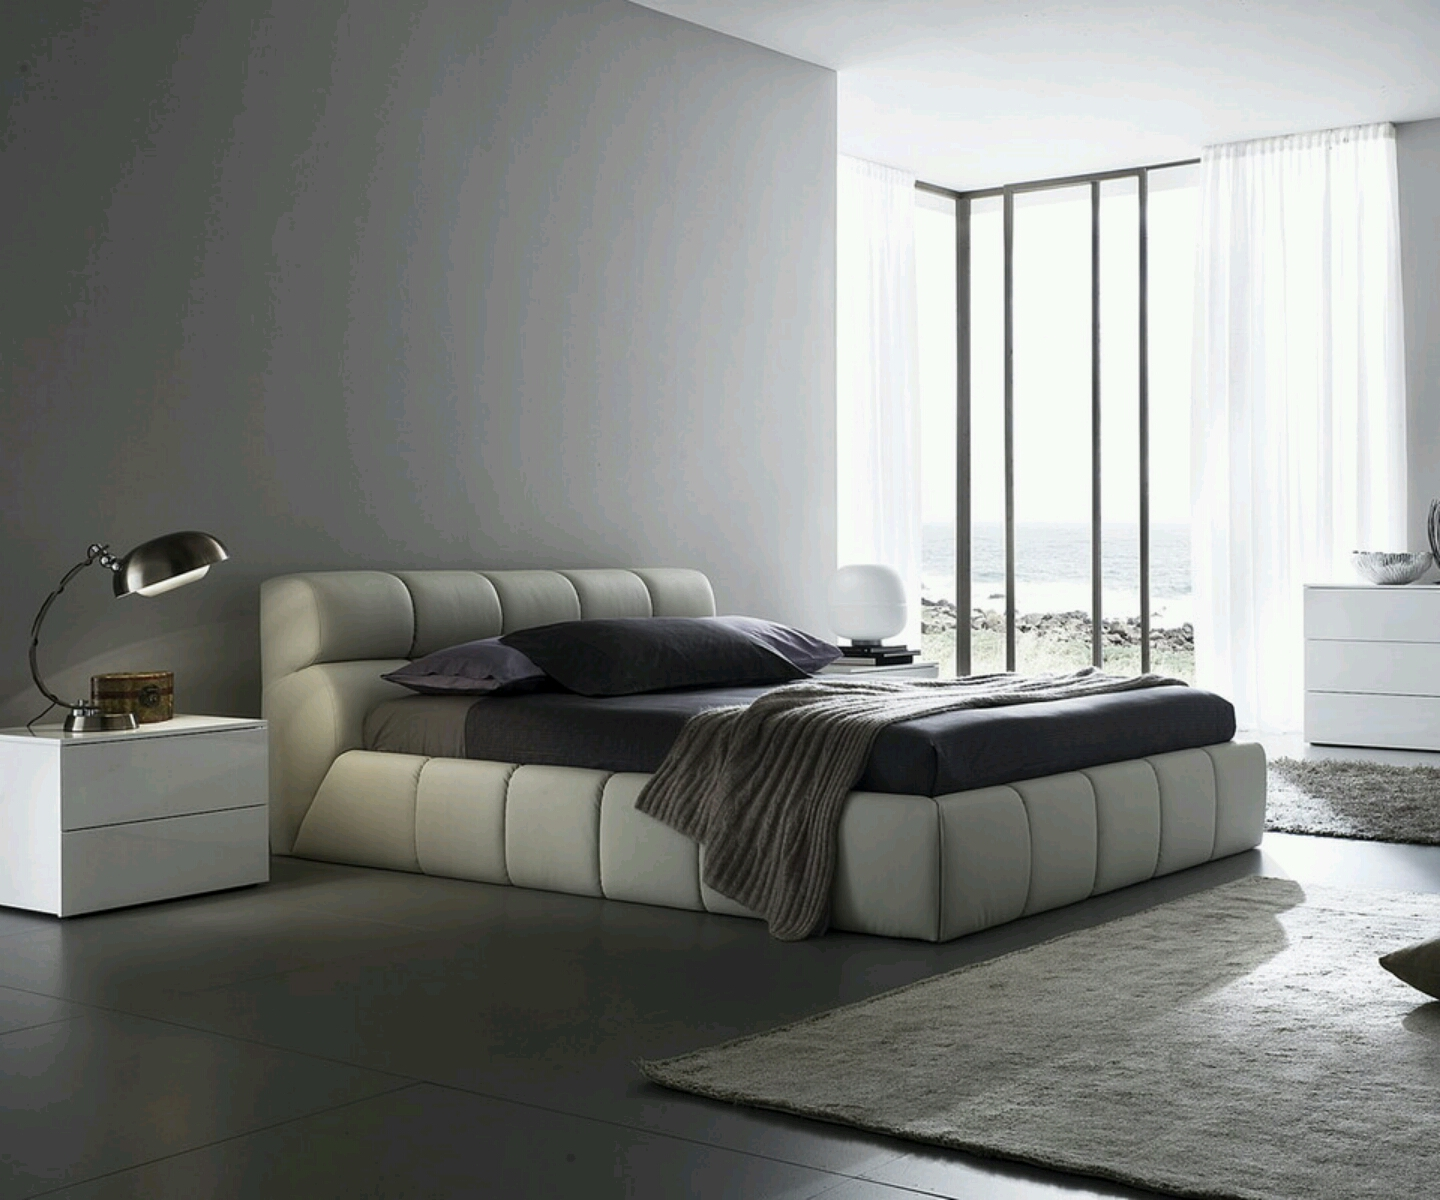 Modern furniture modern bed designs beautiful bedrooms for Images of beds for bedroom